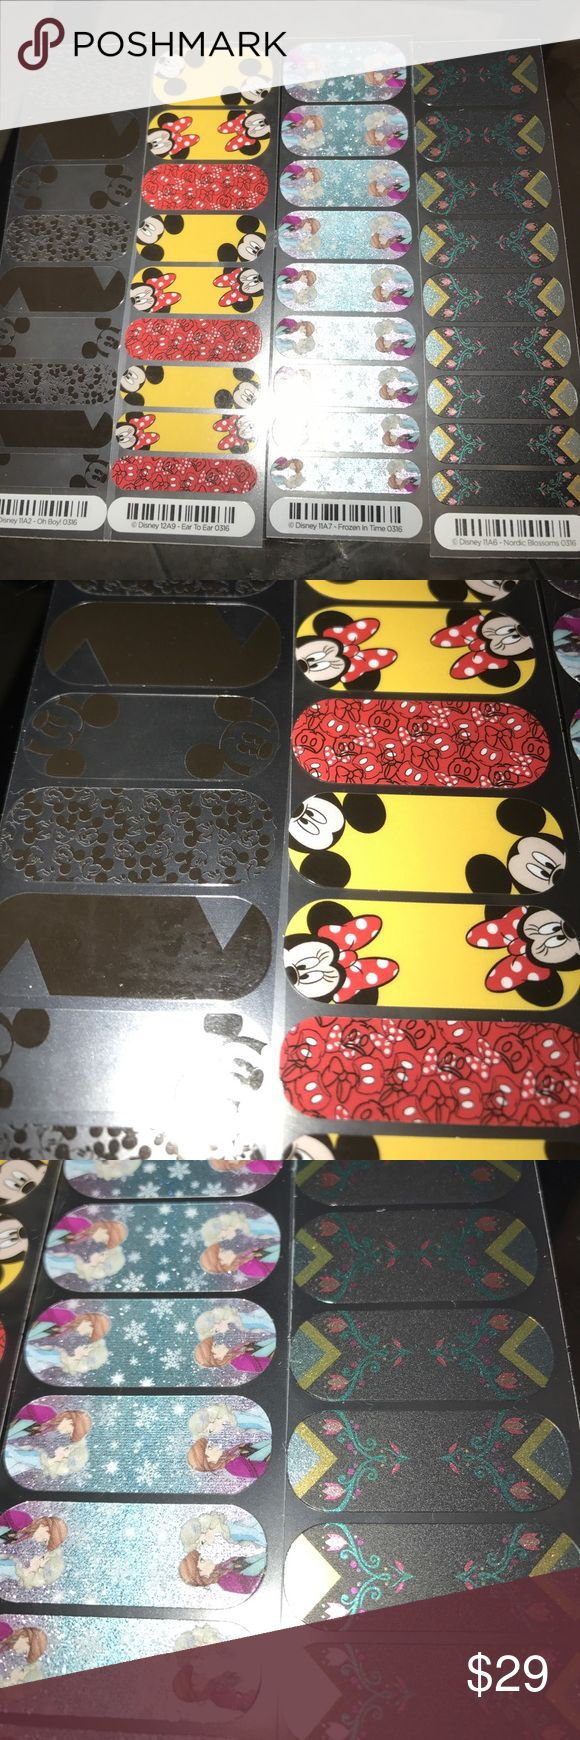 Jamberry Disney Lot Mickey frozen nail stickers Disney Jamberry Lot  1/2 sheets quantity 4  Oh boy!  Black and clear Mickey  Ear to ear Mickey Minnie  Frozen in time Anna Elsa  Nordic blossoms Makeup